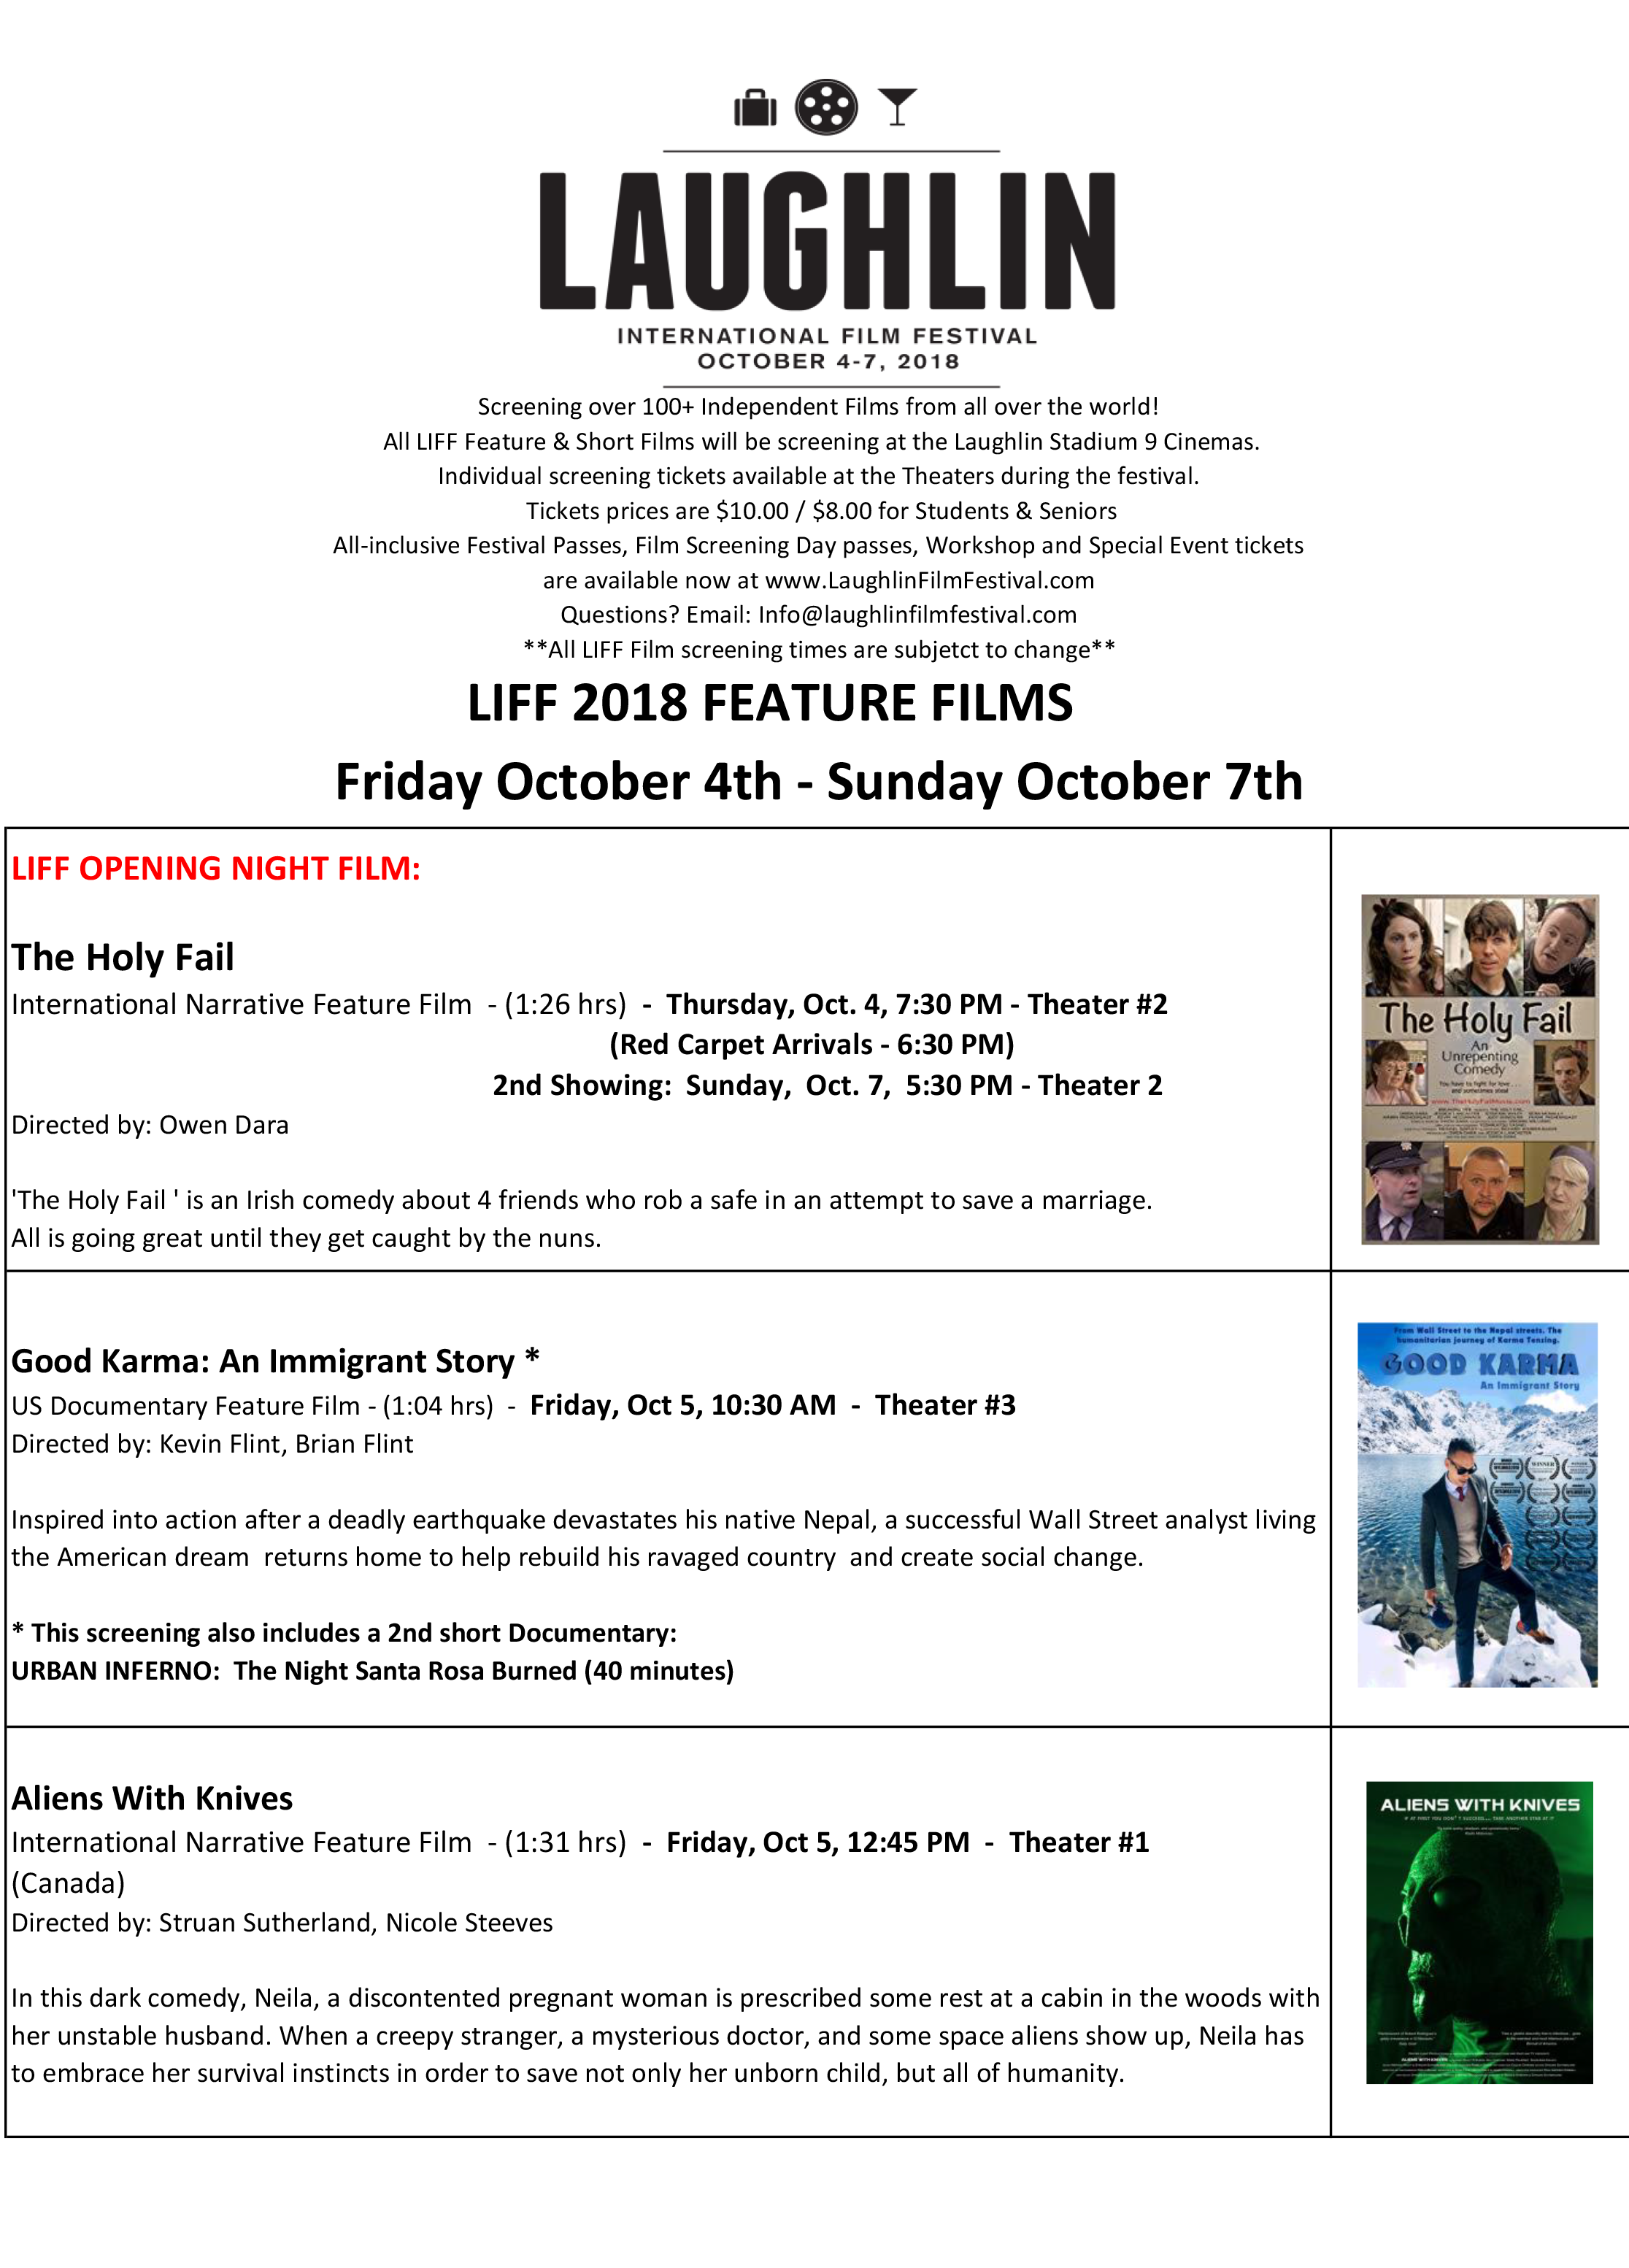 FEATURE FILM SCHEDULE - ALL DAYS